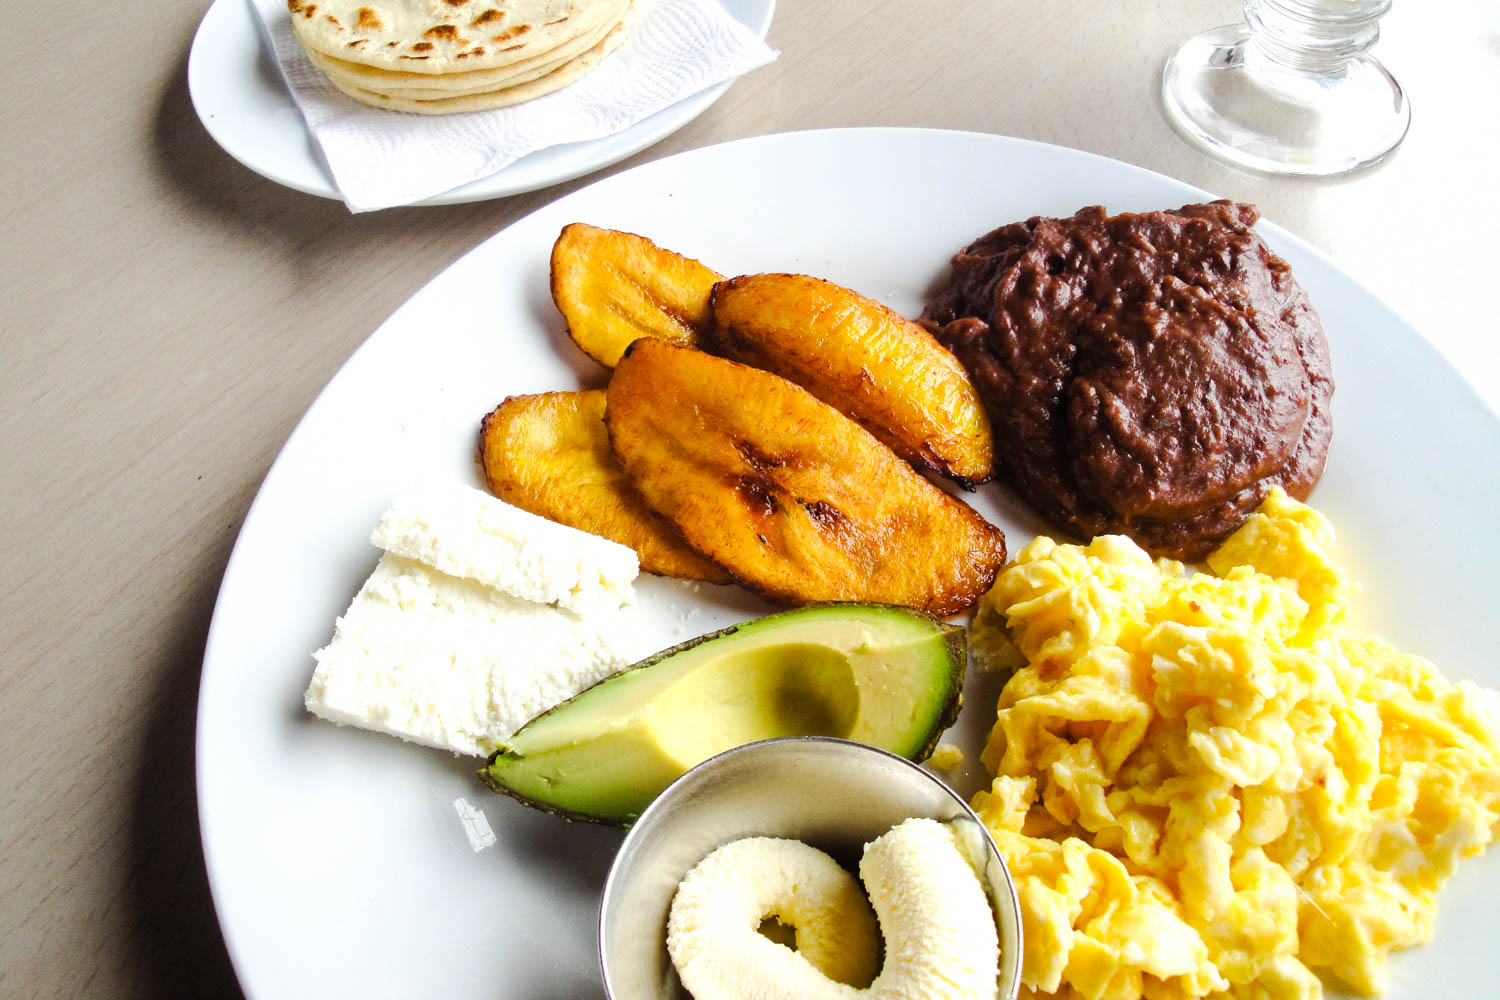 Desayuno tipico or typical breakfast in Honduran cuisine is one of the best ways to start the day.